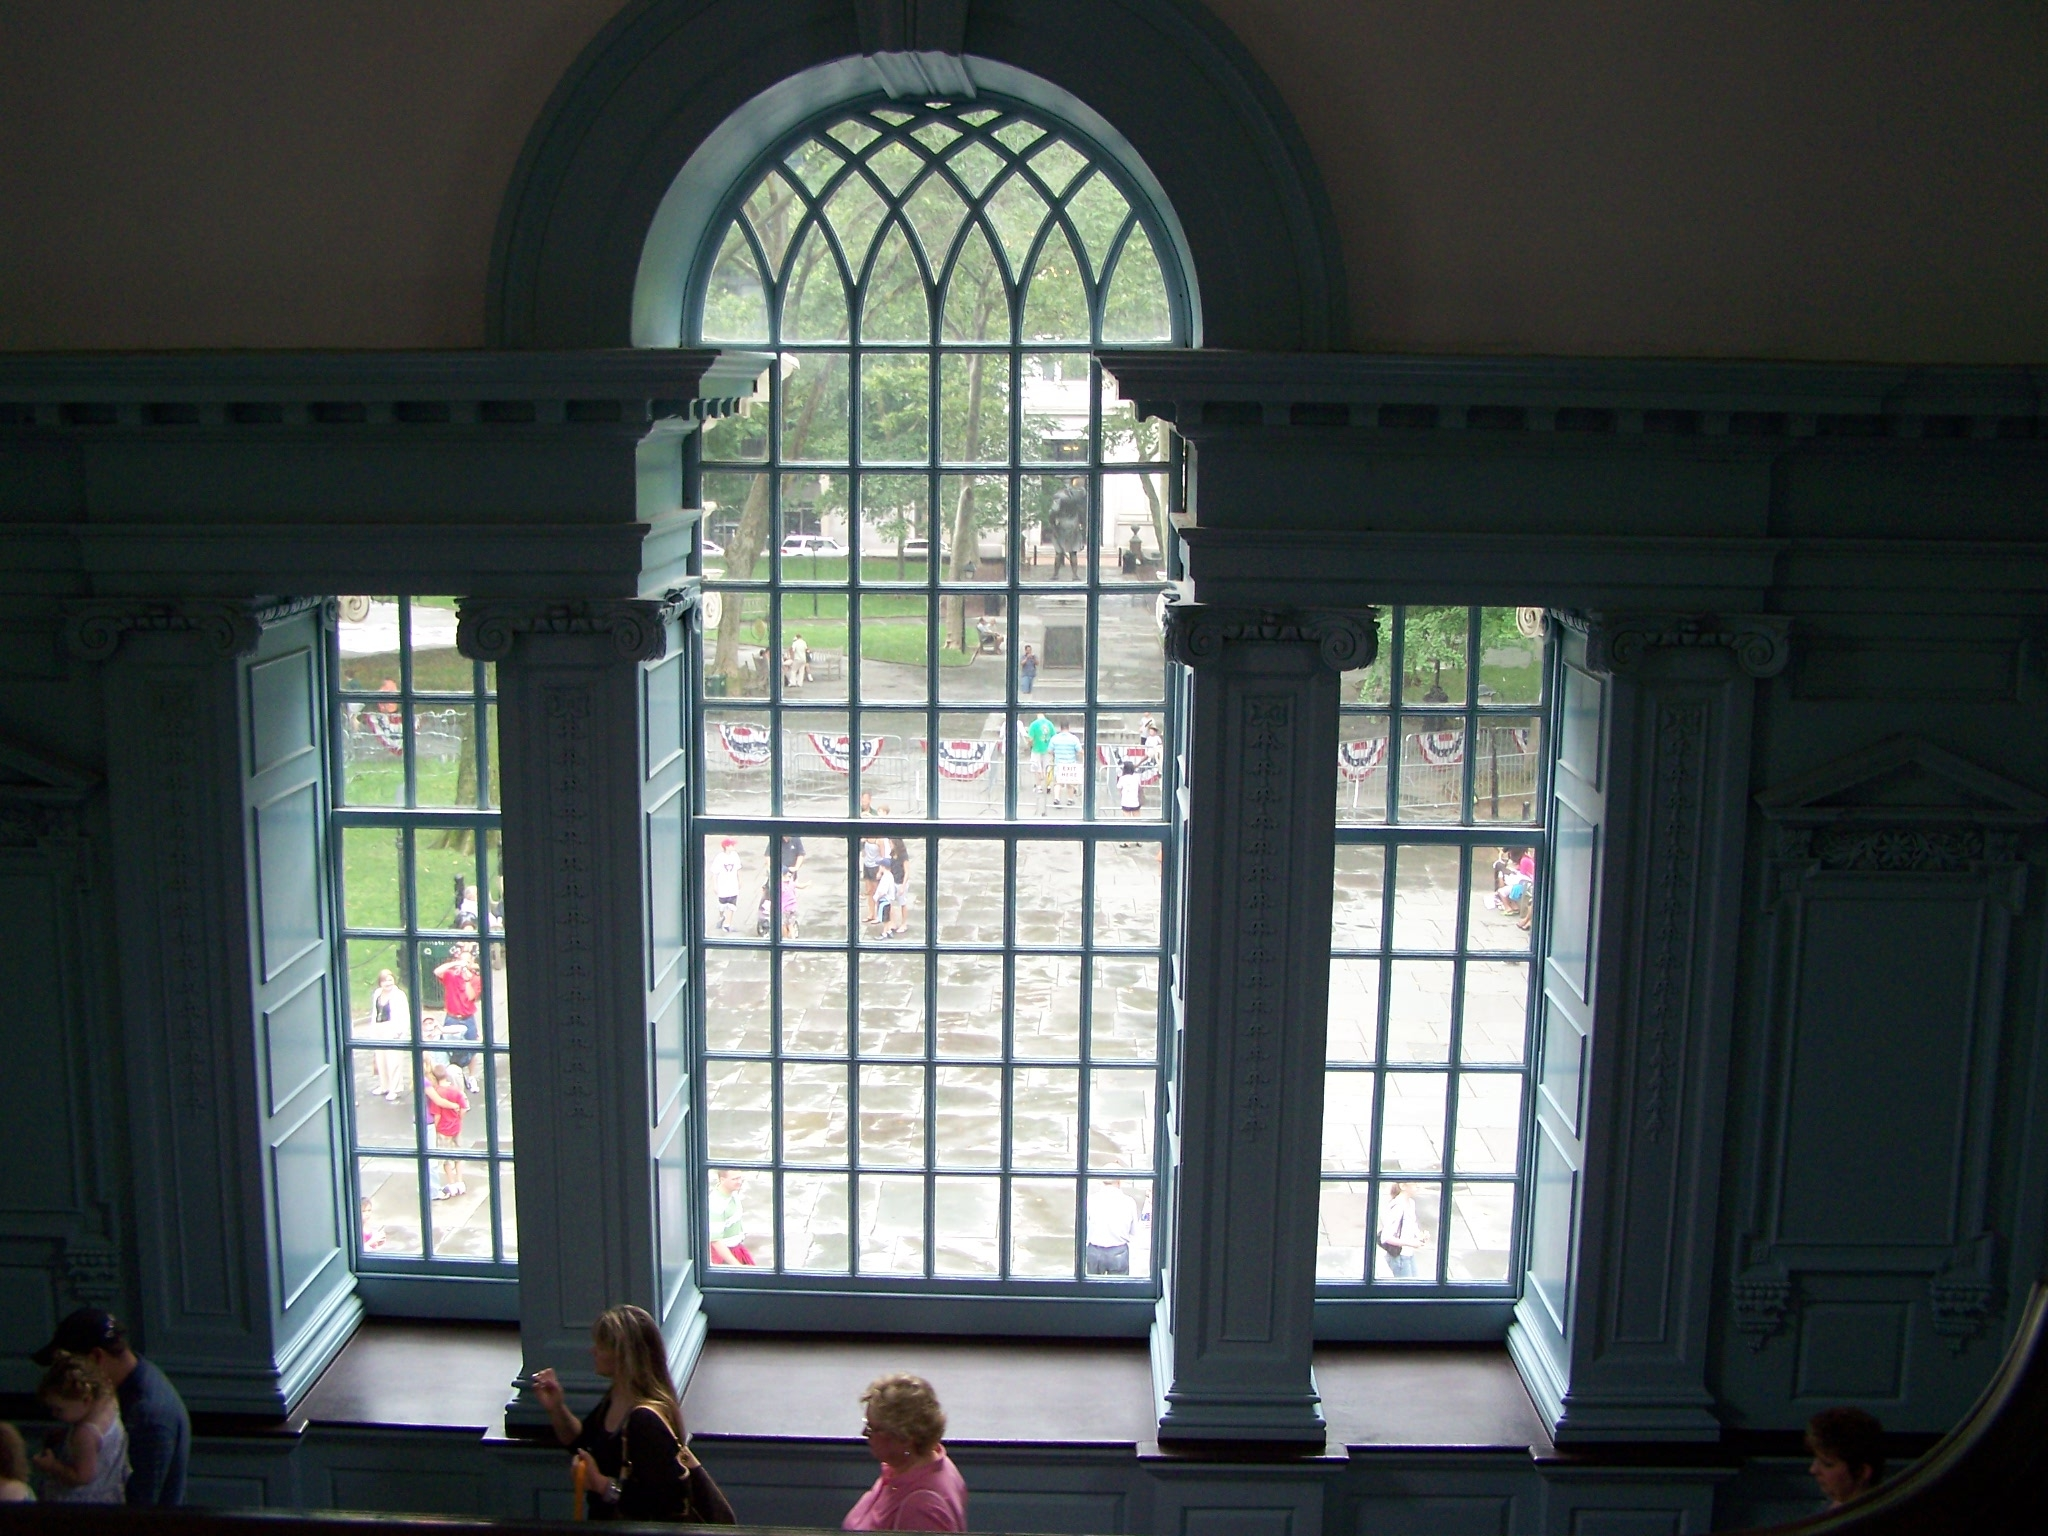 Center window from the stairway to the second floor.